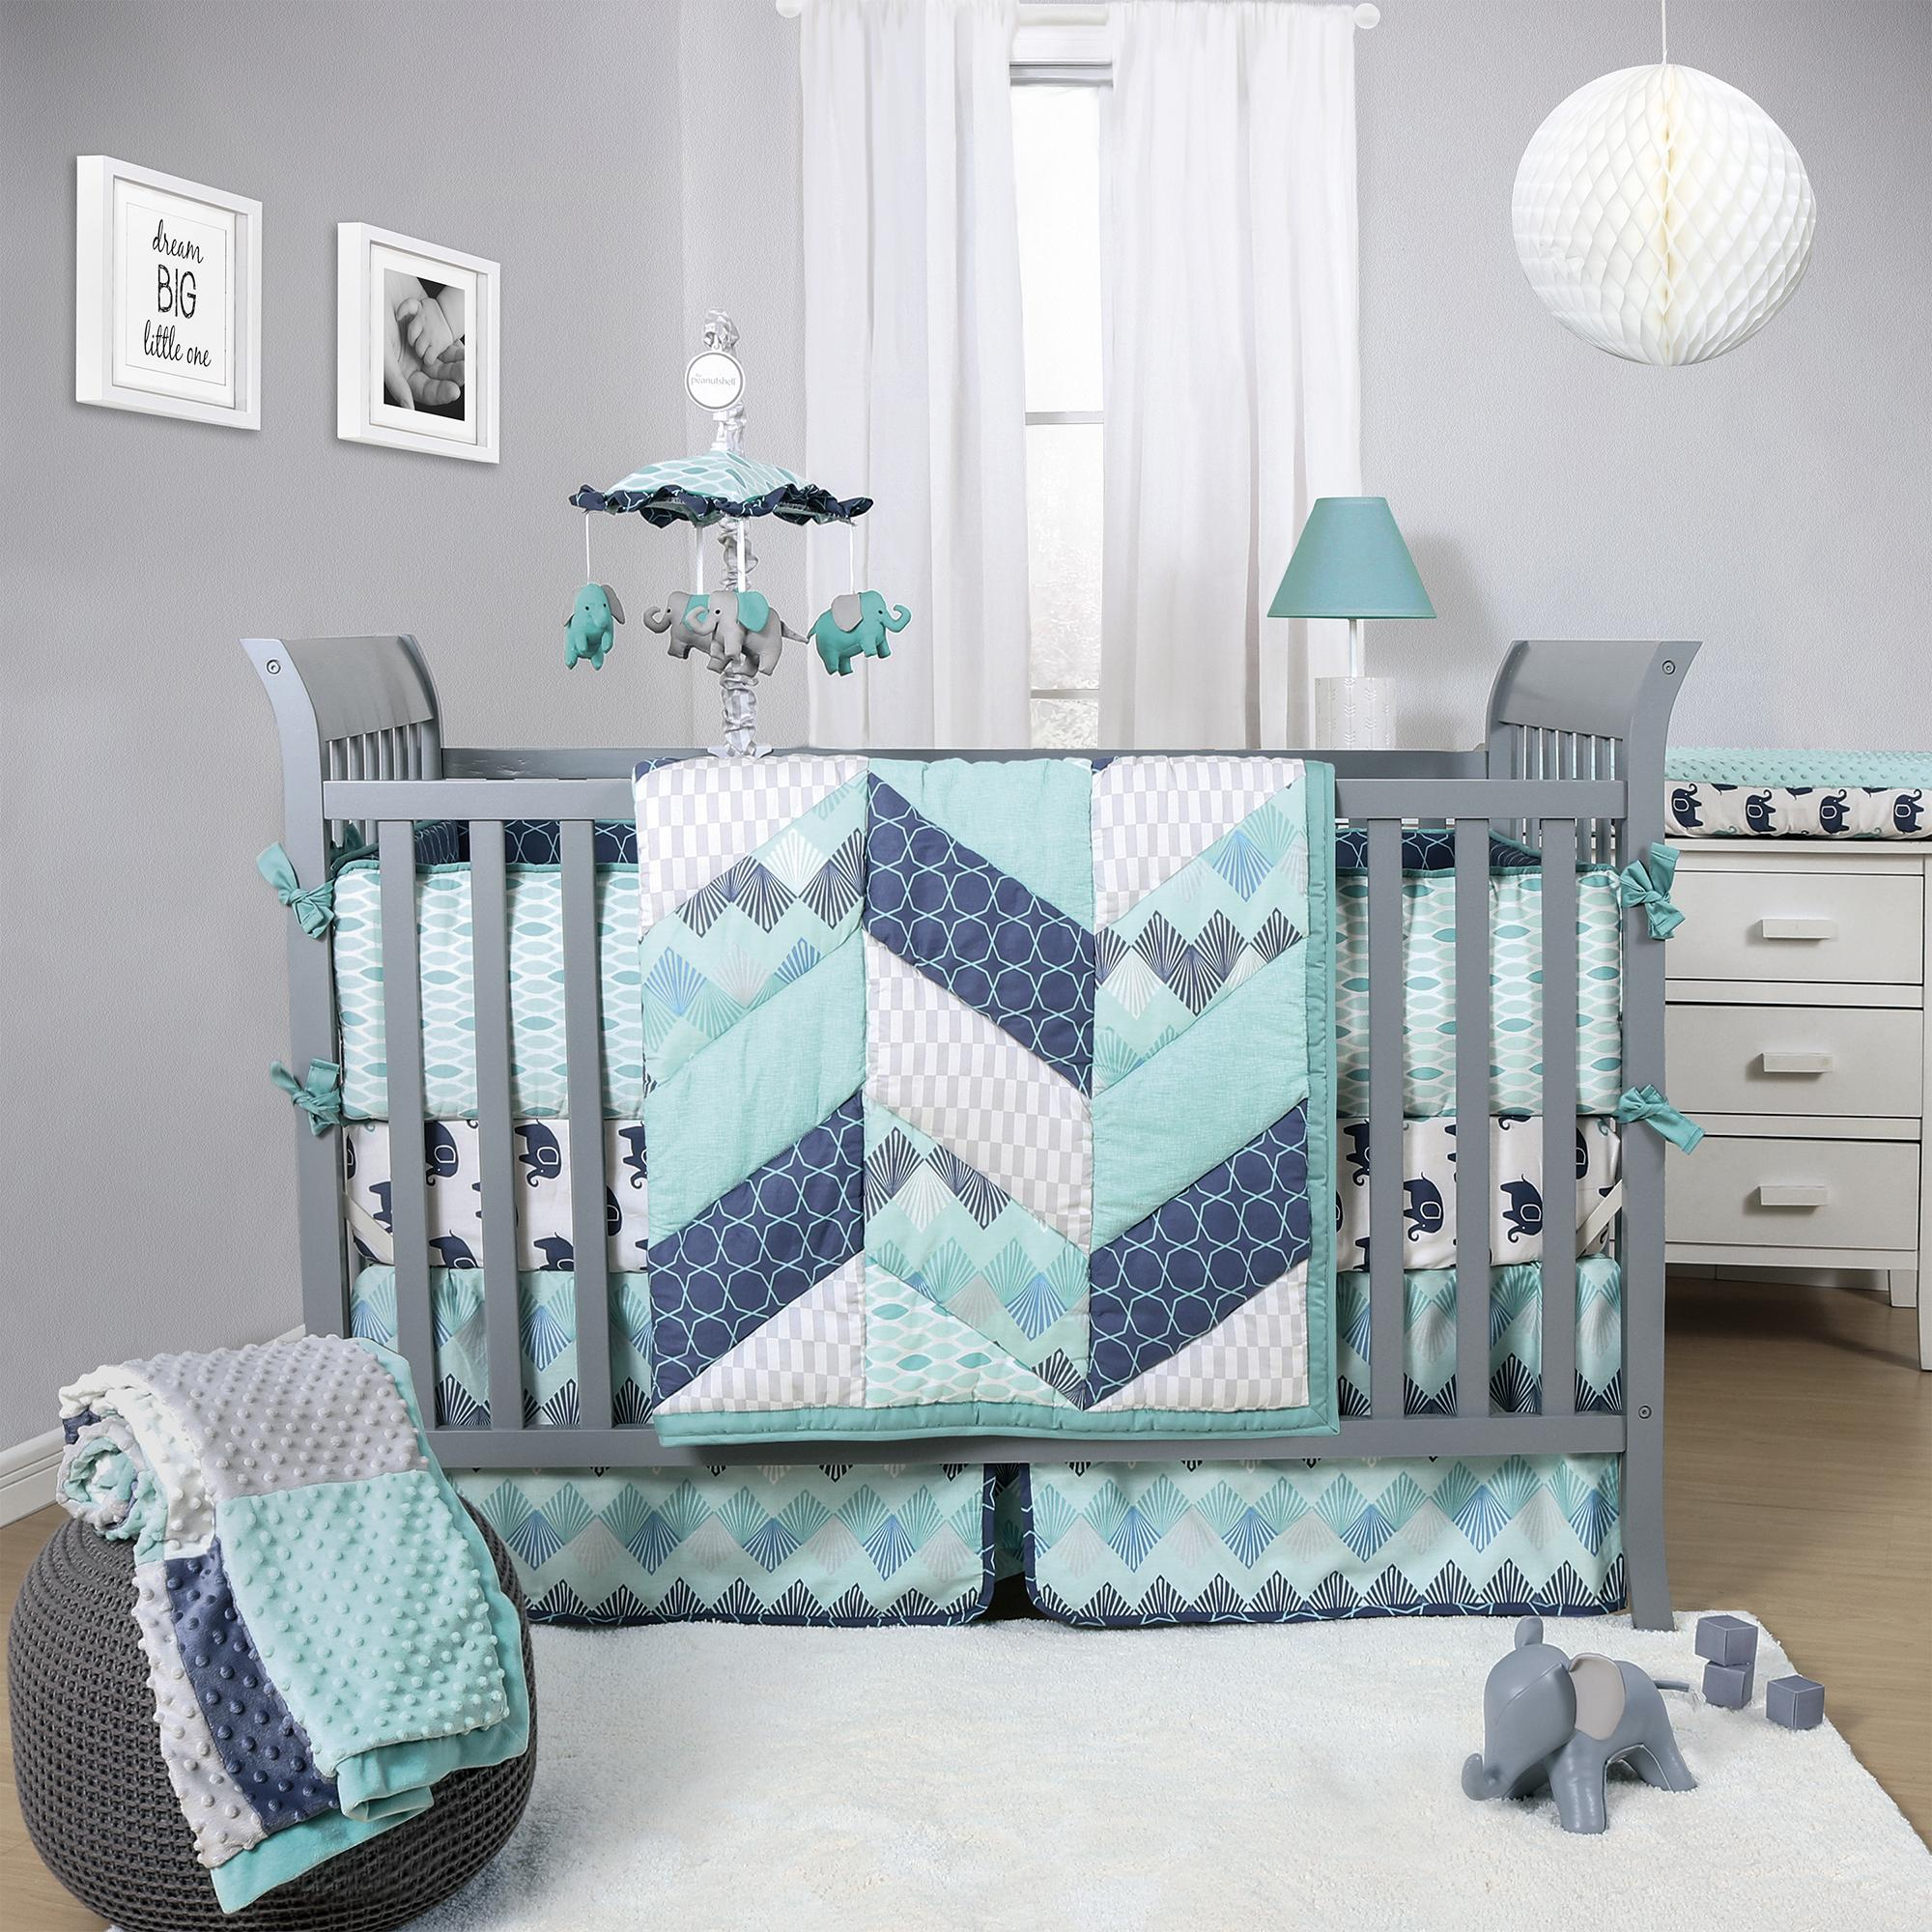 huge with chevron is bedding image crib itm set grey and piece purple elephant trim blankets cribs patchwork loading